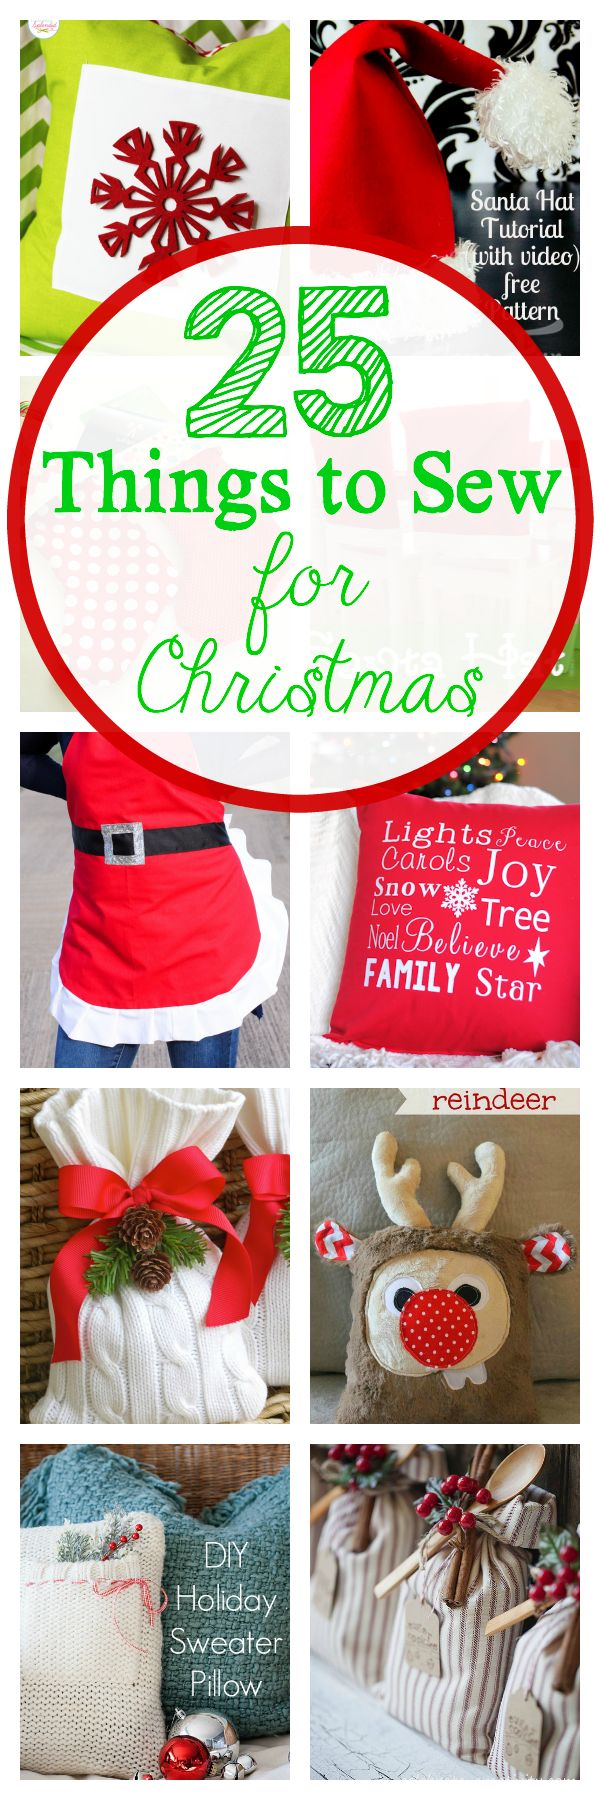 It's Christmas time and that means so many fun projects! I love to create fun holiday things and today I have gathered up some holiday inspiration for you with 25 Things to Sew for Christmas!…